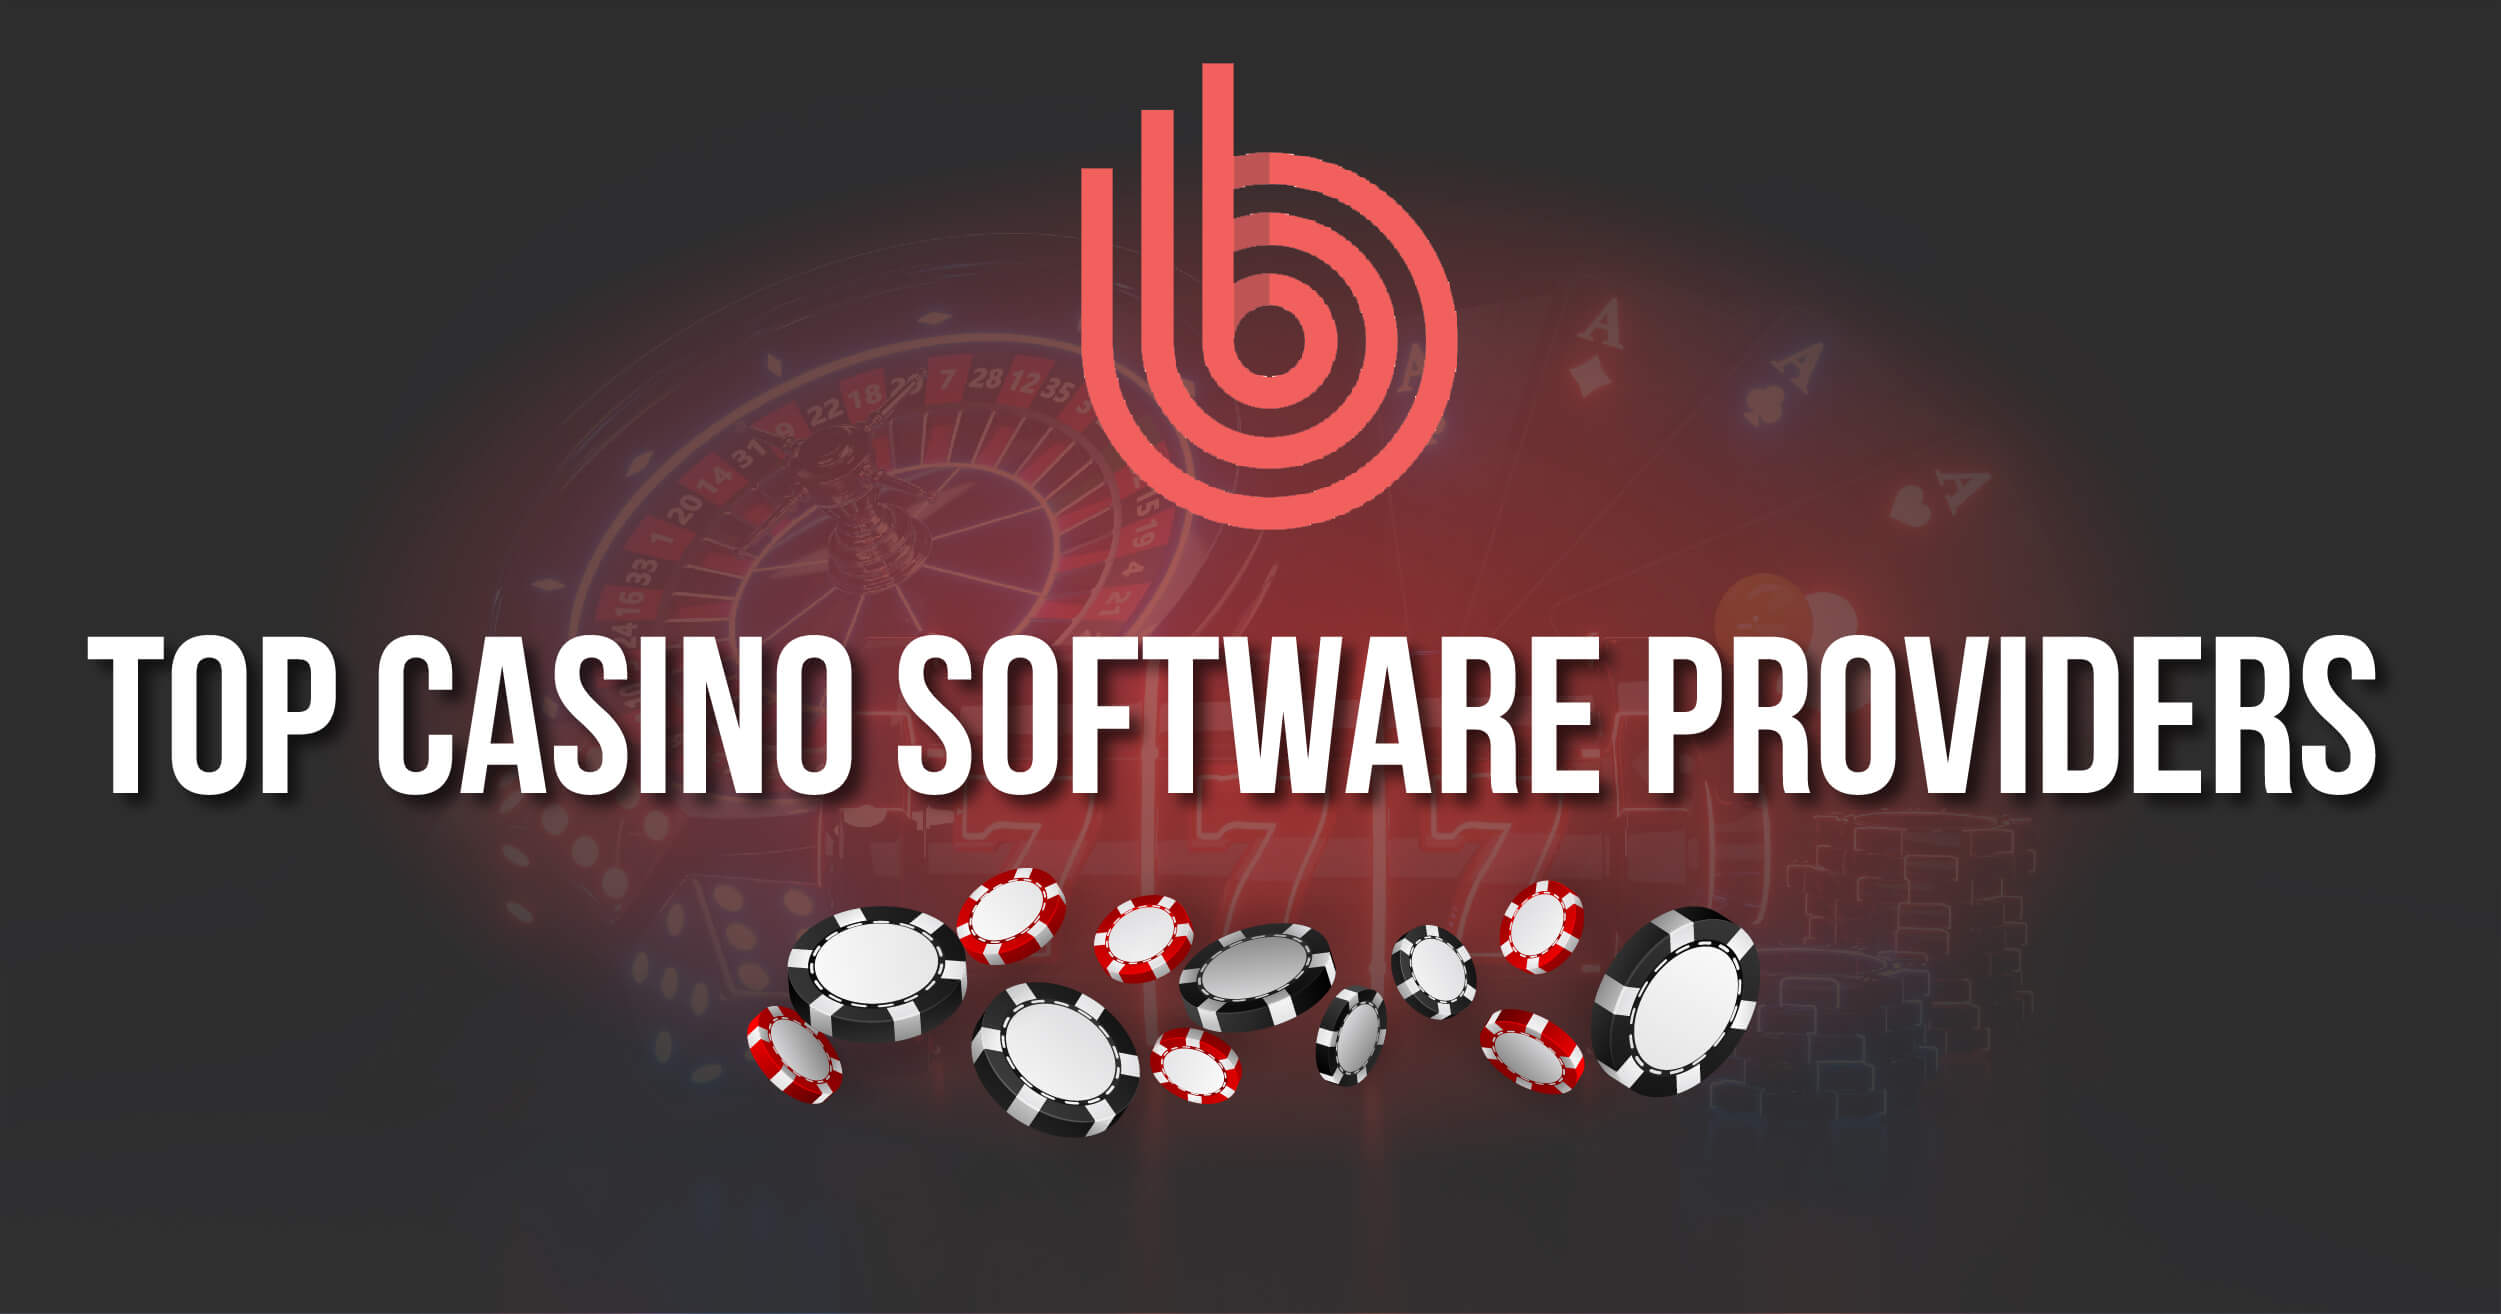 Top Casino Software Providers Review